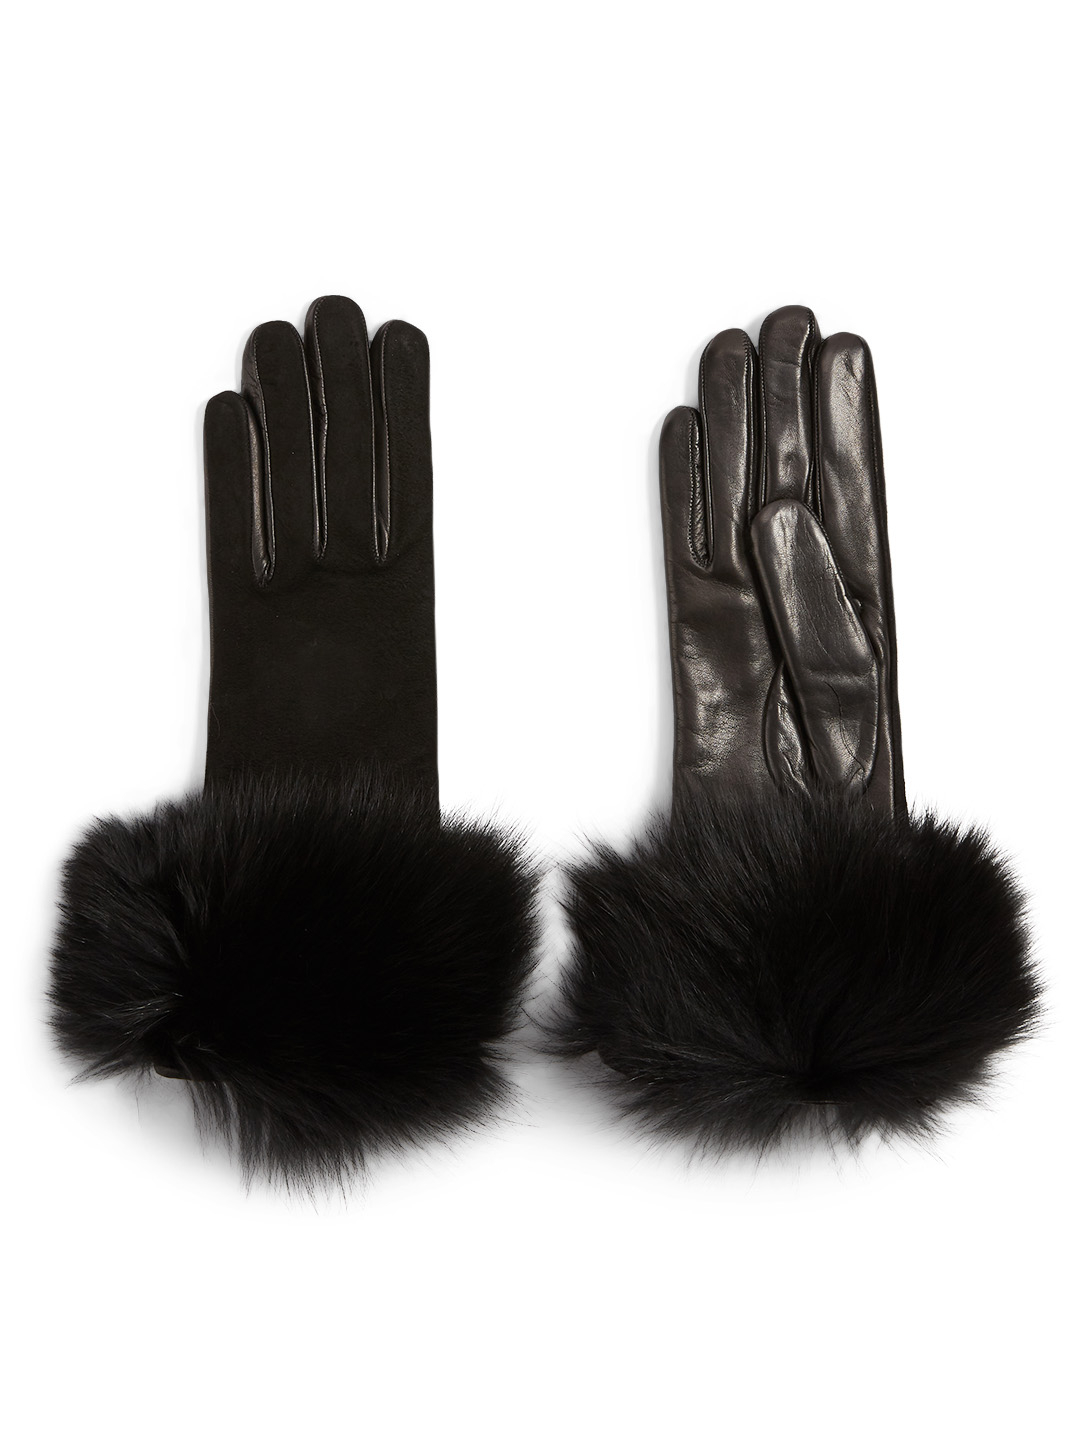 FLORIANA GLOVES Cashmere-Lined Suede And Nappa Leather Gloves With Fur Cuff Women's Black